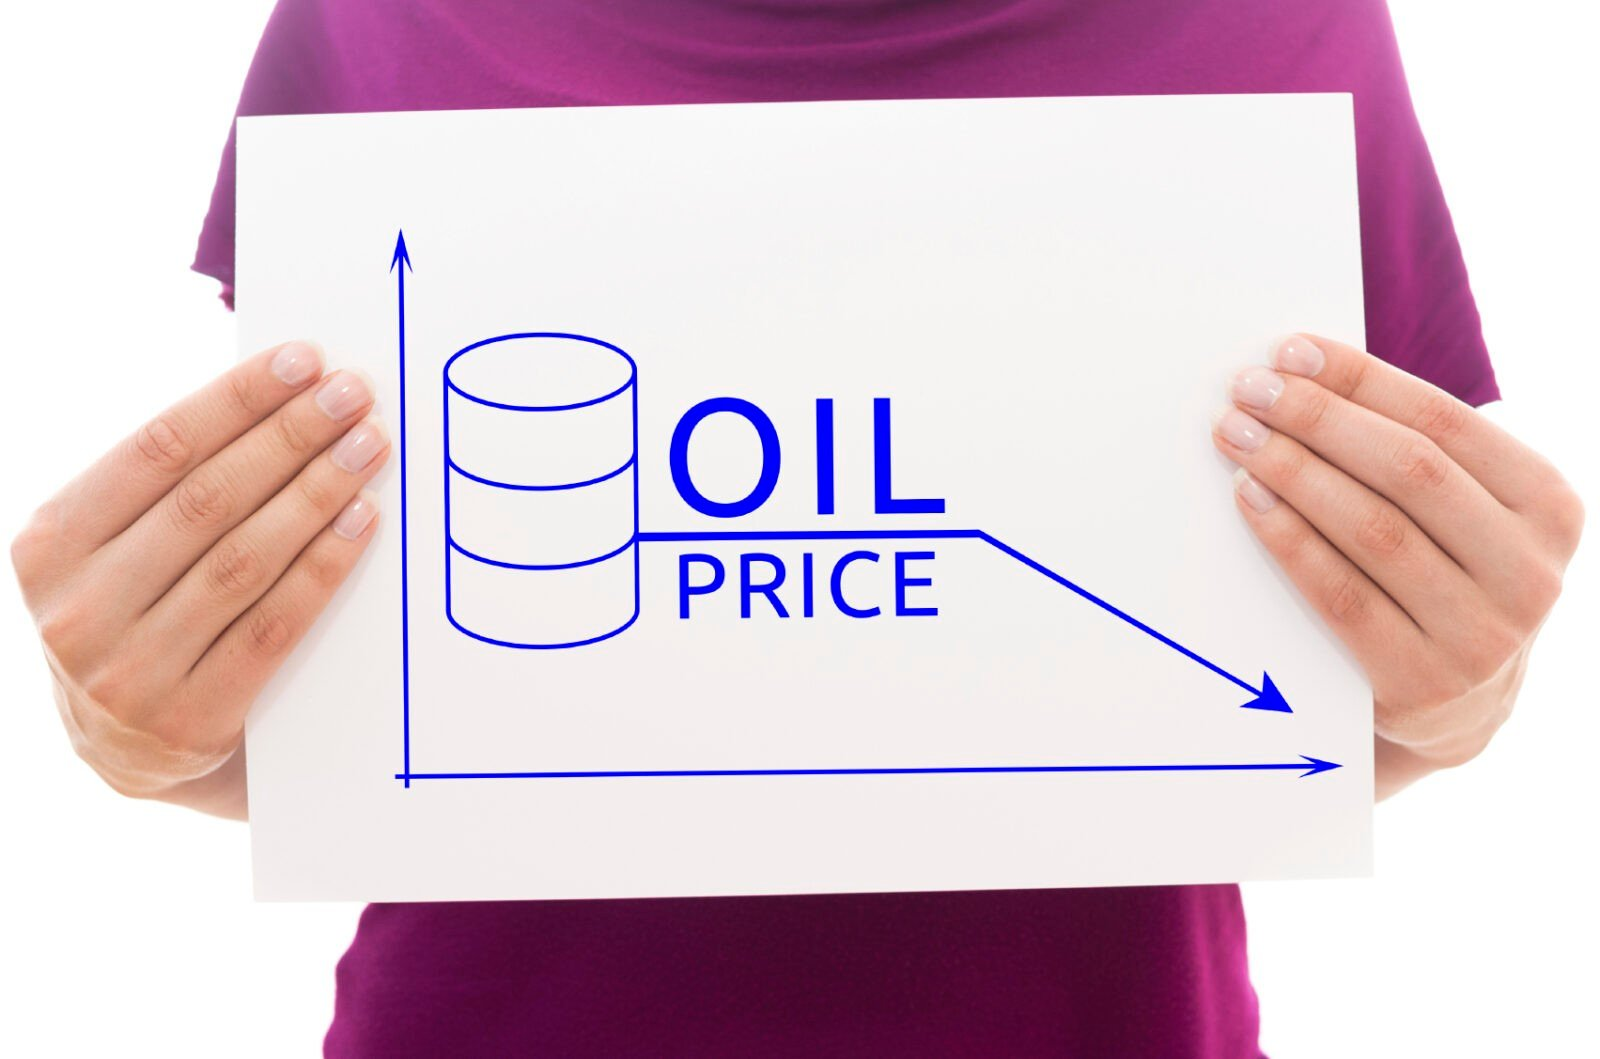 Girl holding white paper sheet with illustration of oil price